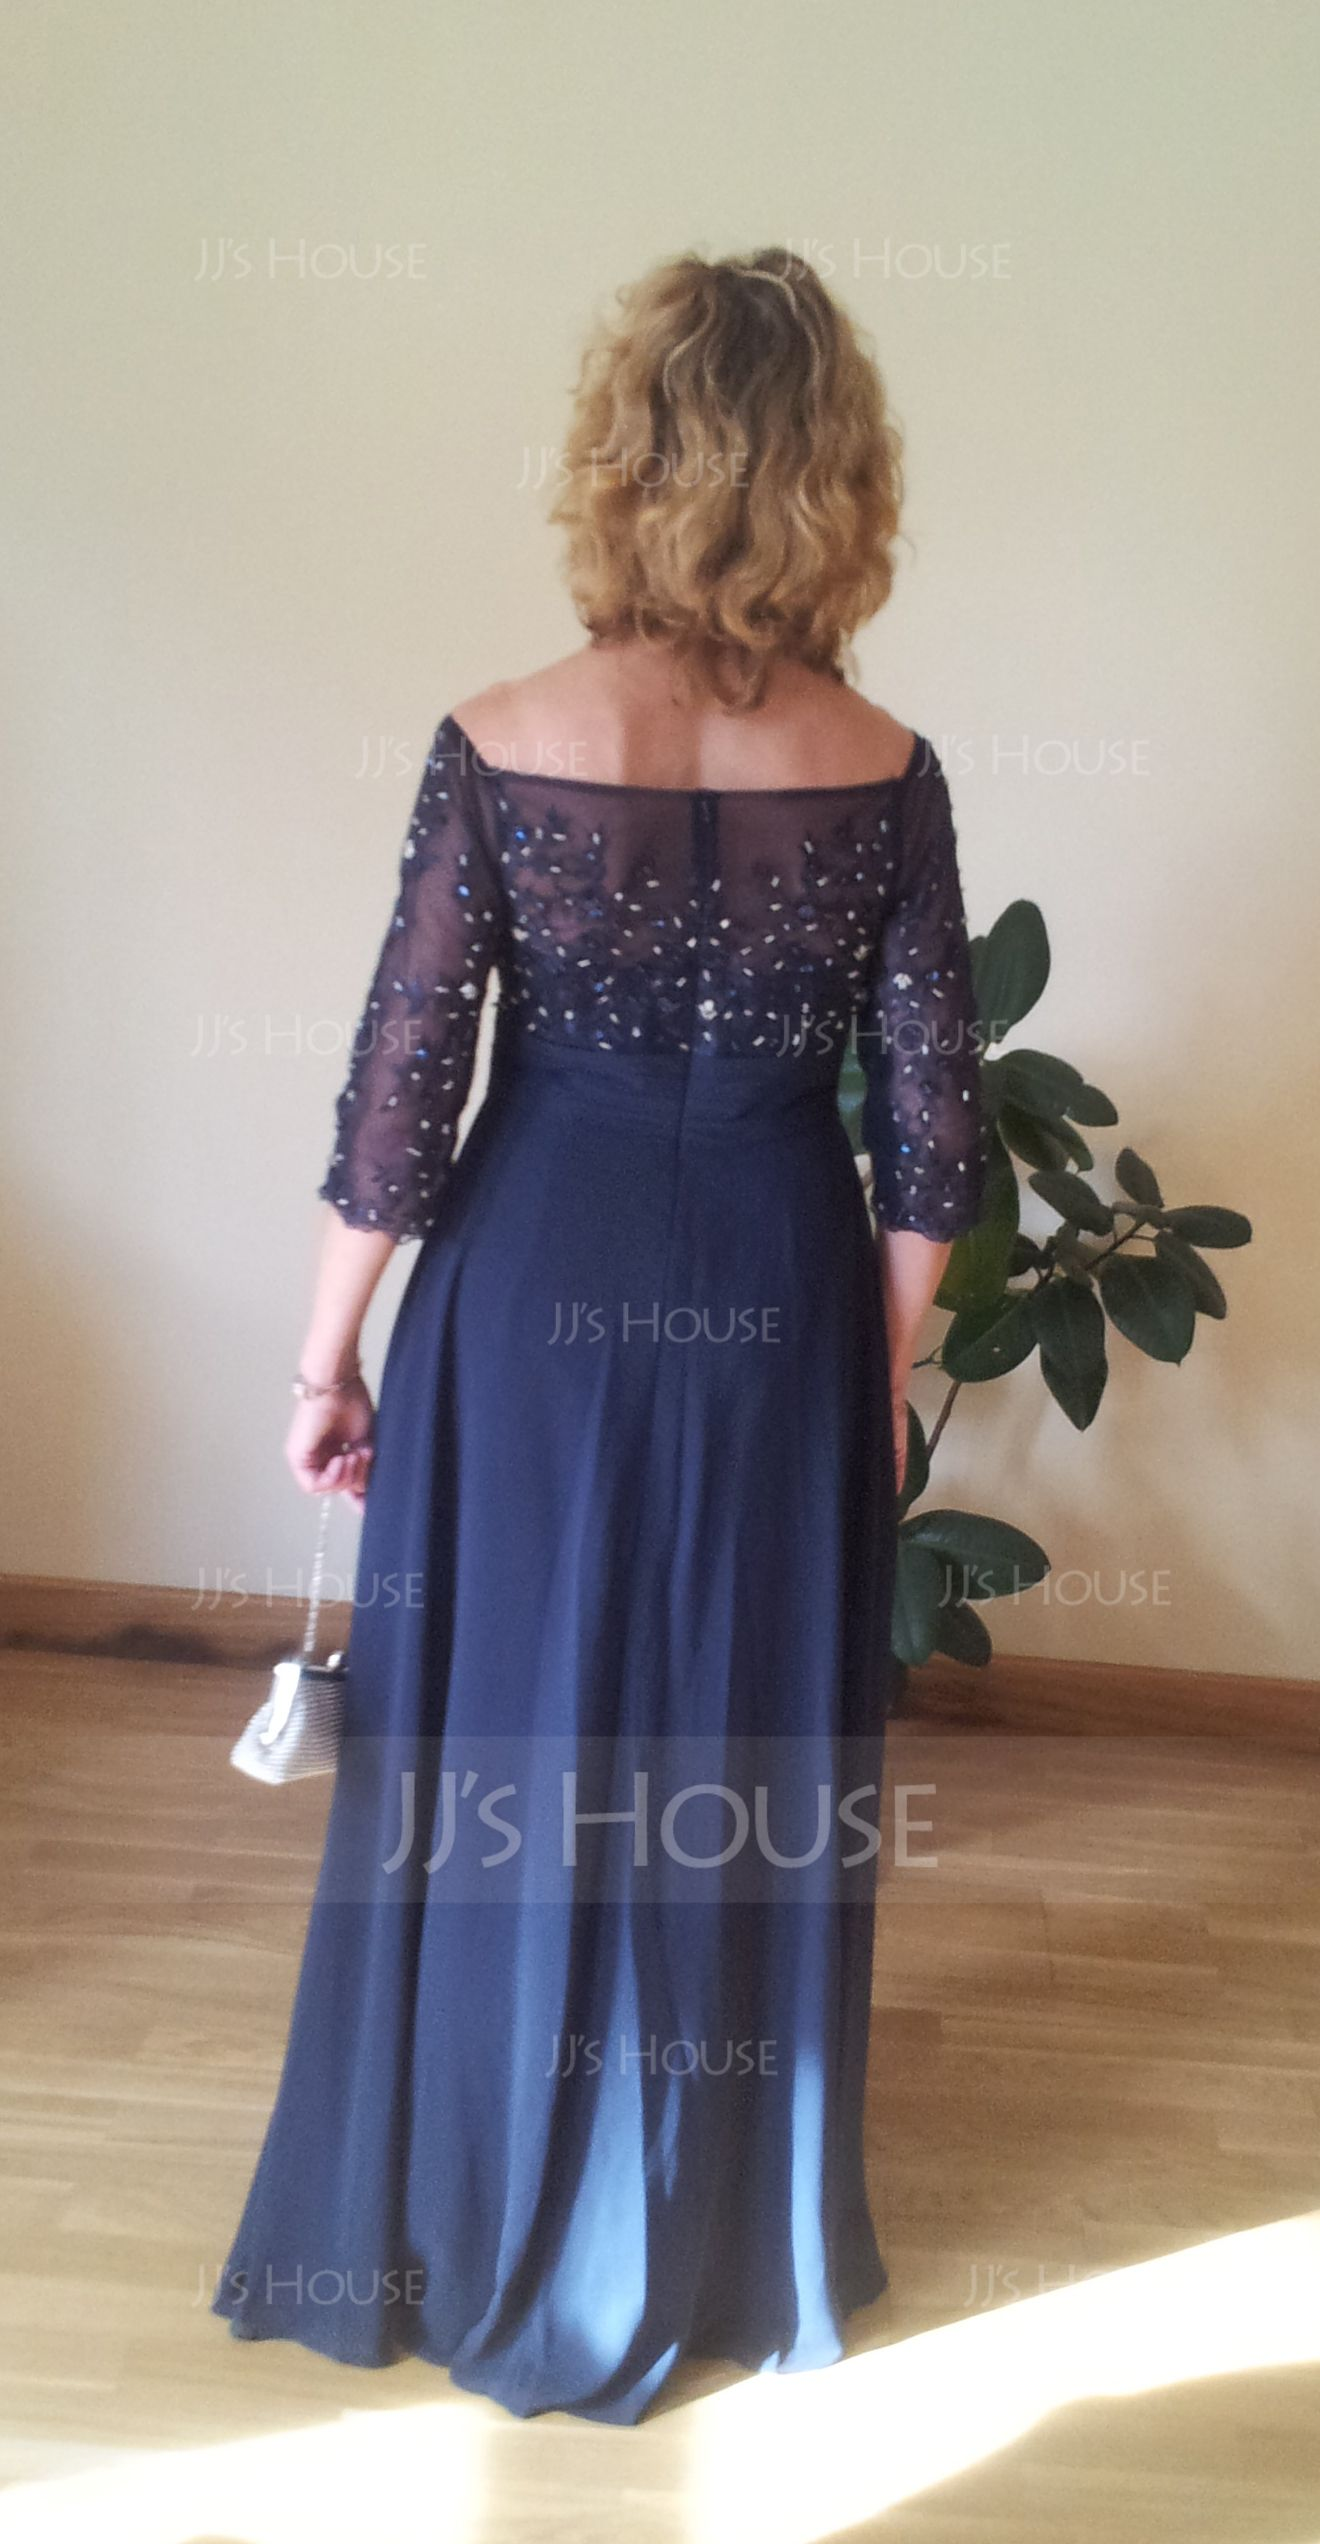 Off-the-Shoulder Floor-Length Chiffon Mother of the Bride Dress With Beading Appliques Lace Sequins (267196281)